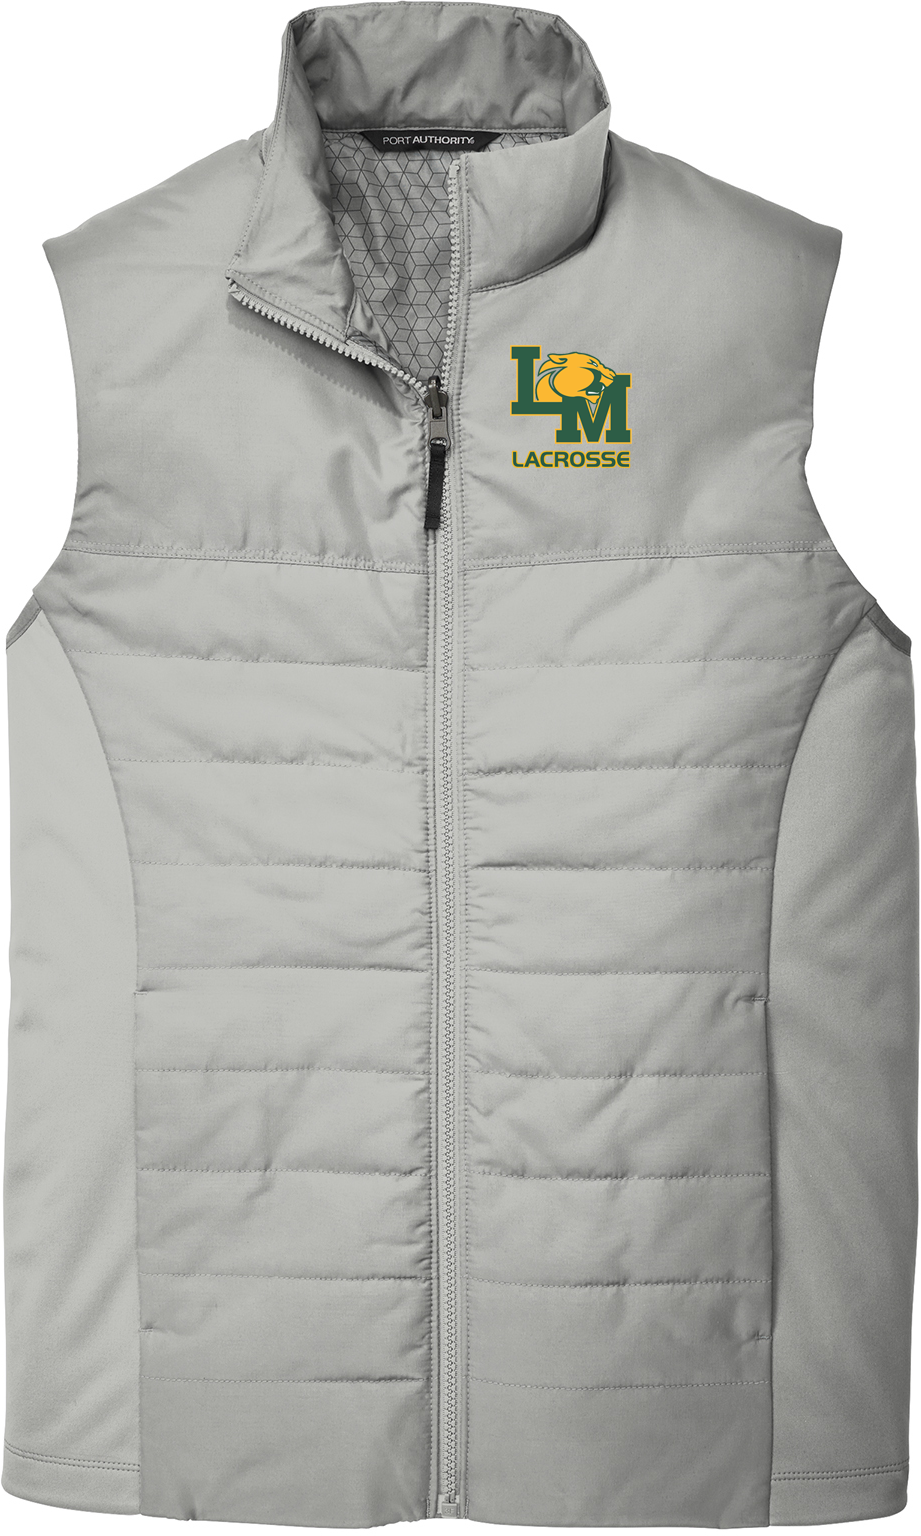 Little Miami Lacrosse Grey Vest